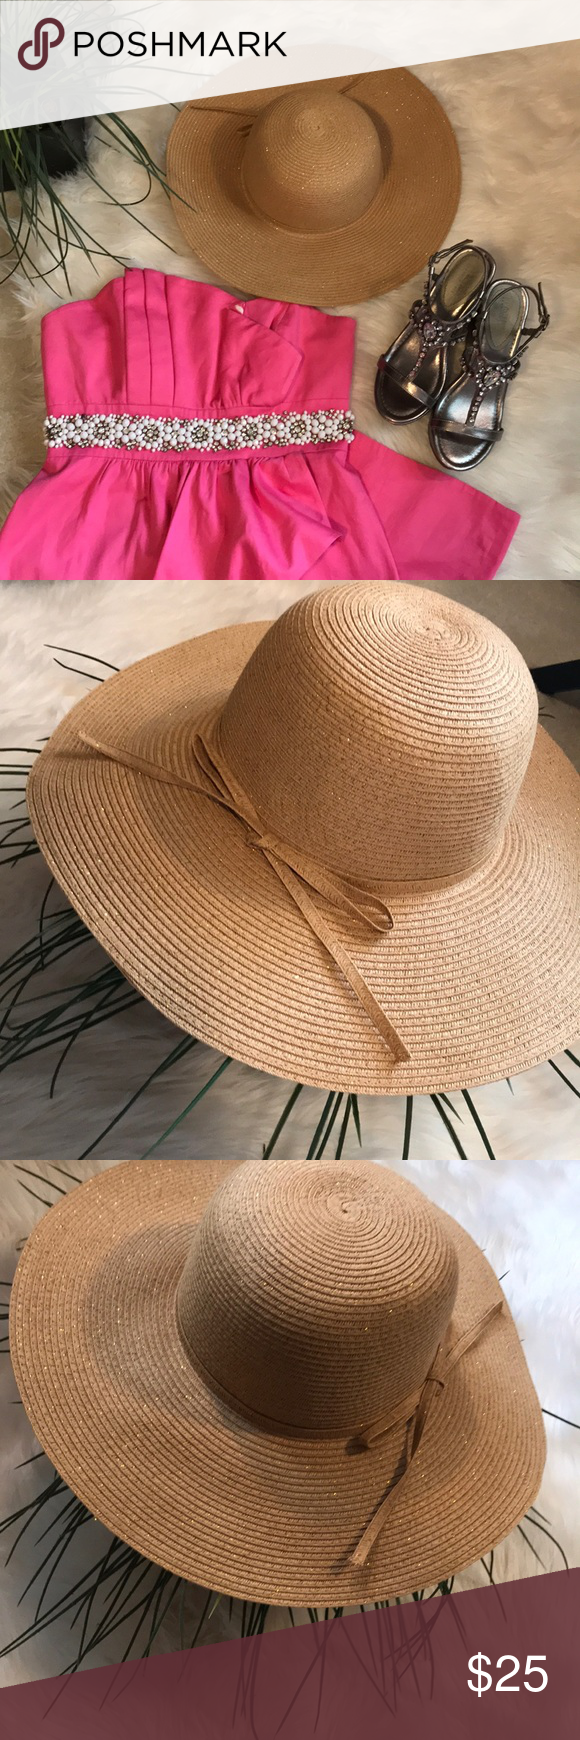 fe0512c4e101a Ann Taylor LOFT Summer Straw Hat Tan and Gold Exquisite Ann Taylor LOFT  round brim hat